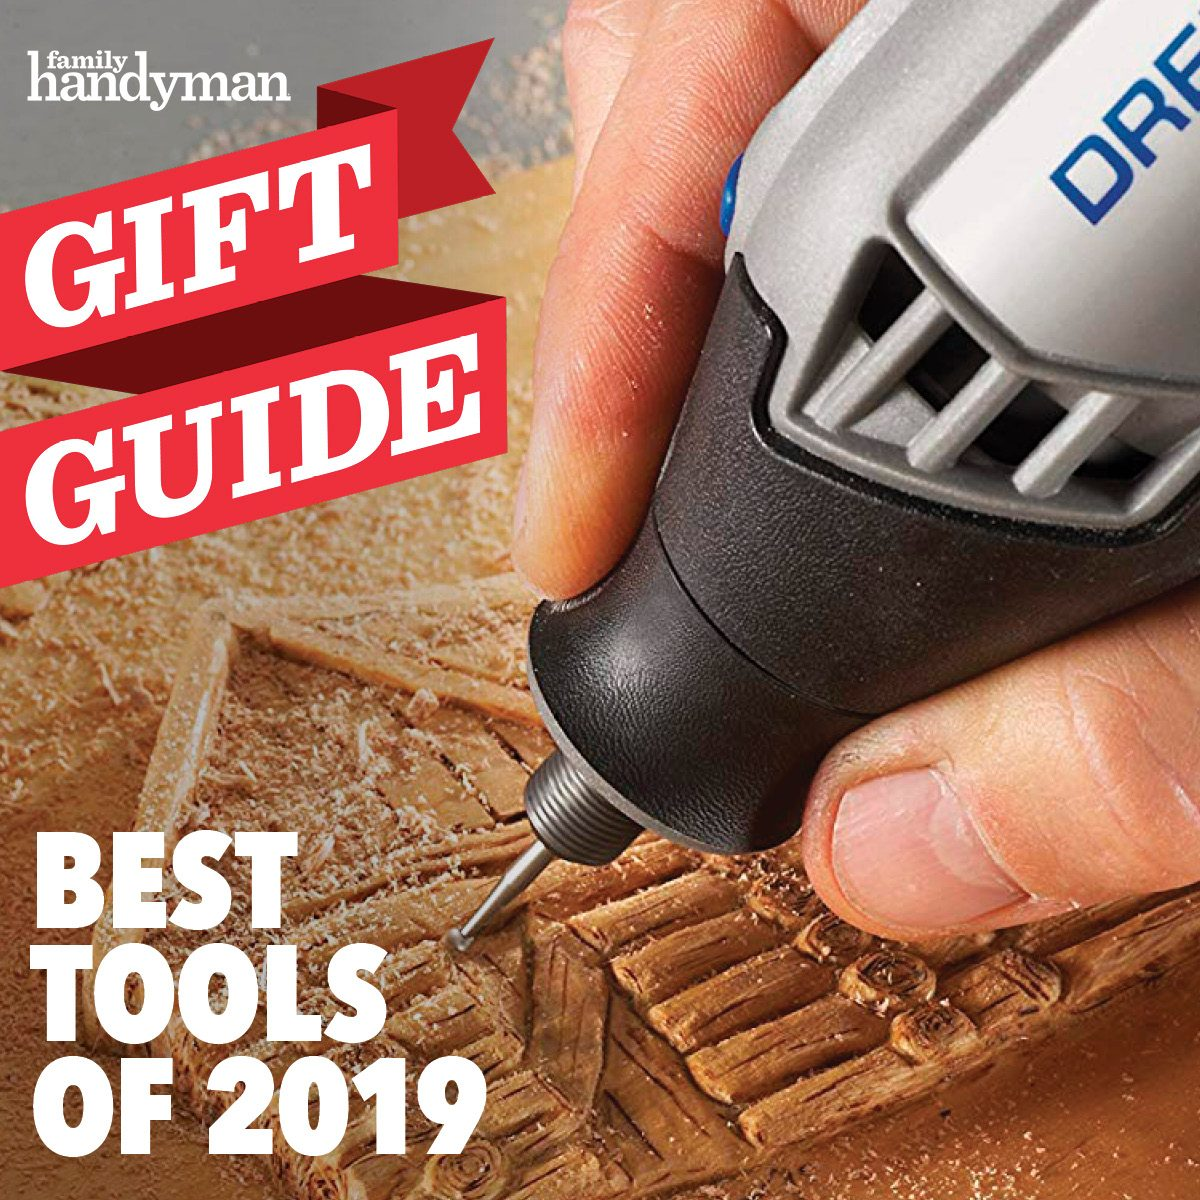 Best Tools of 2019 (According To Pros)